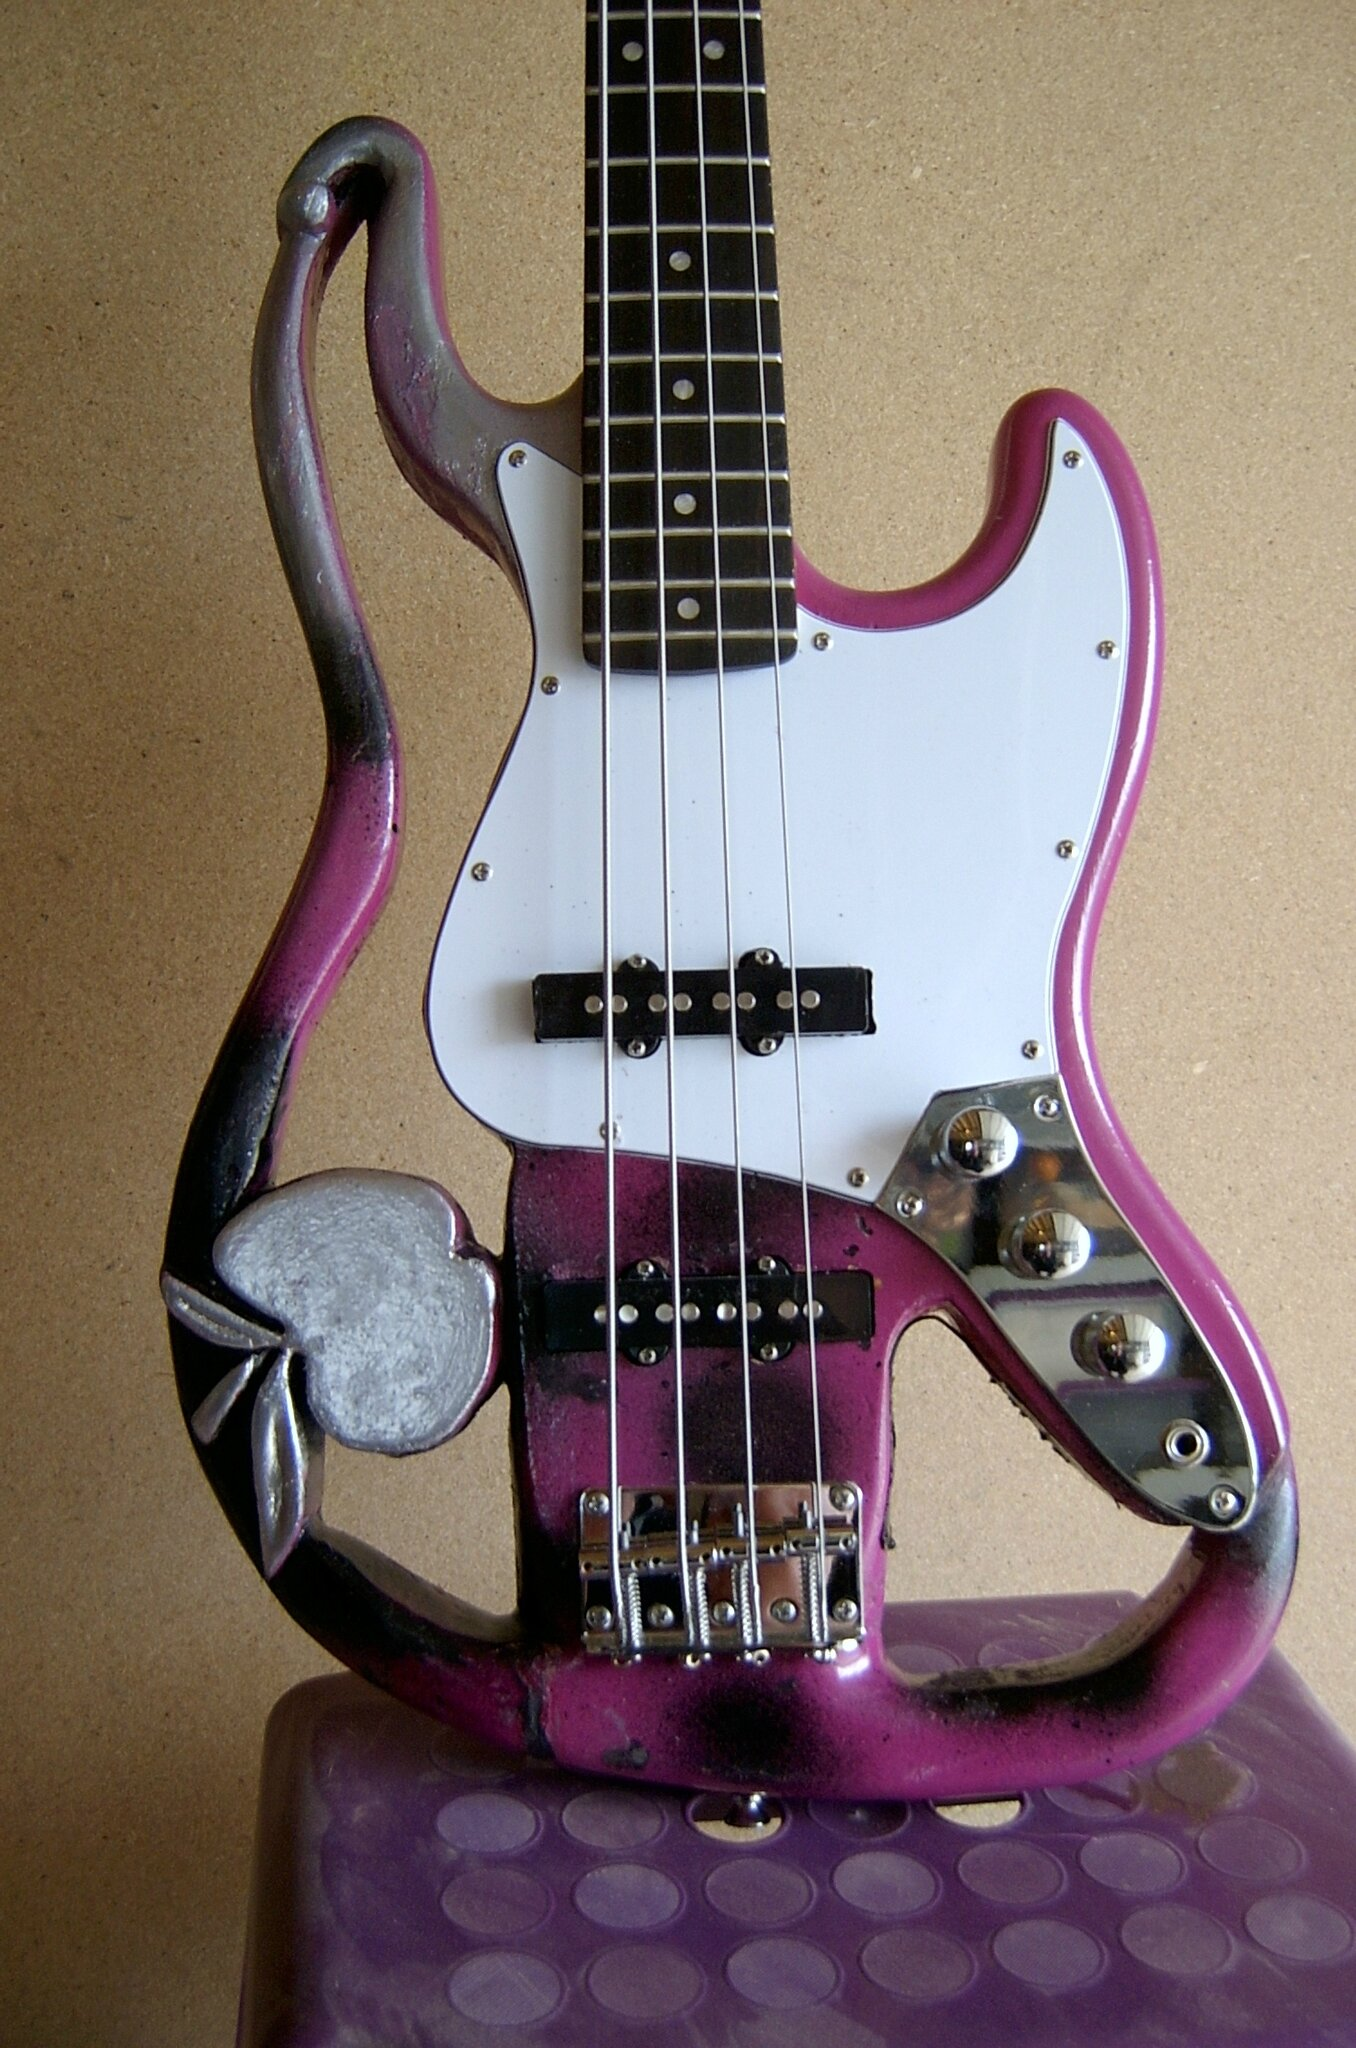 GUITARE SCULPTEE...PURPLE APPLE.....la basse à MELLY.....bzzz!